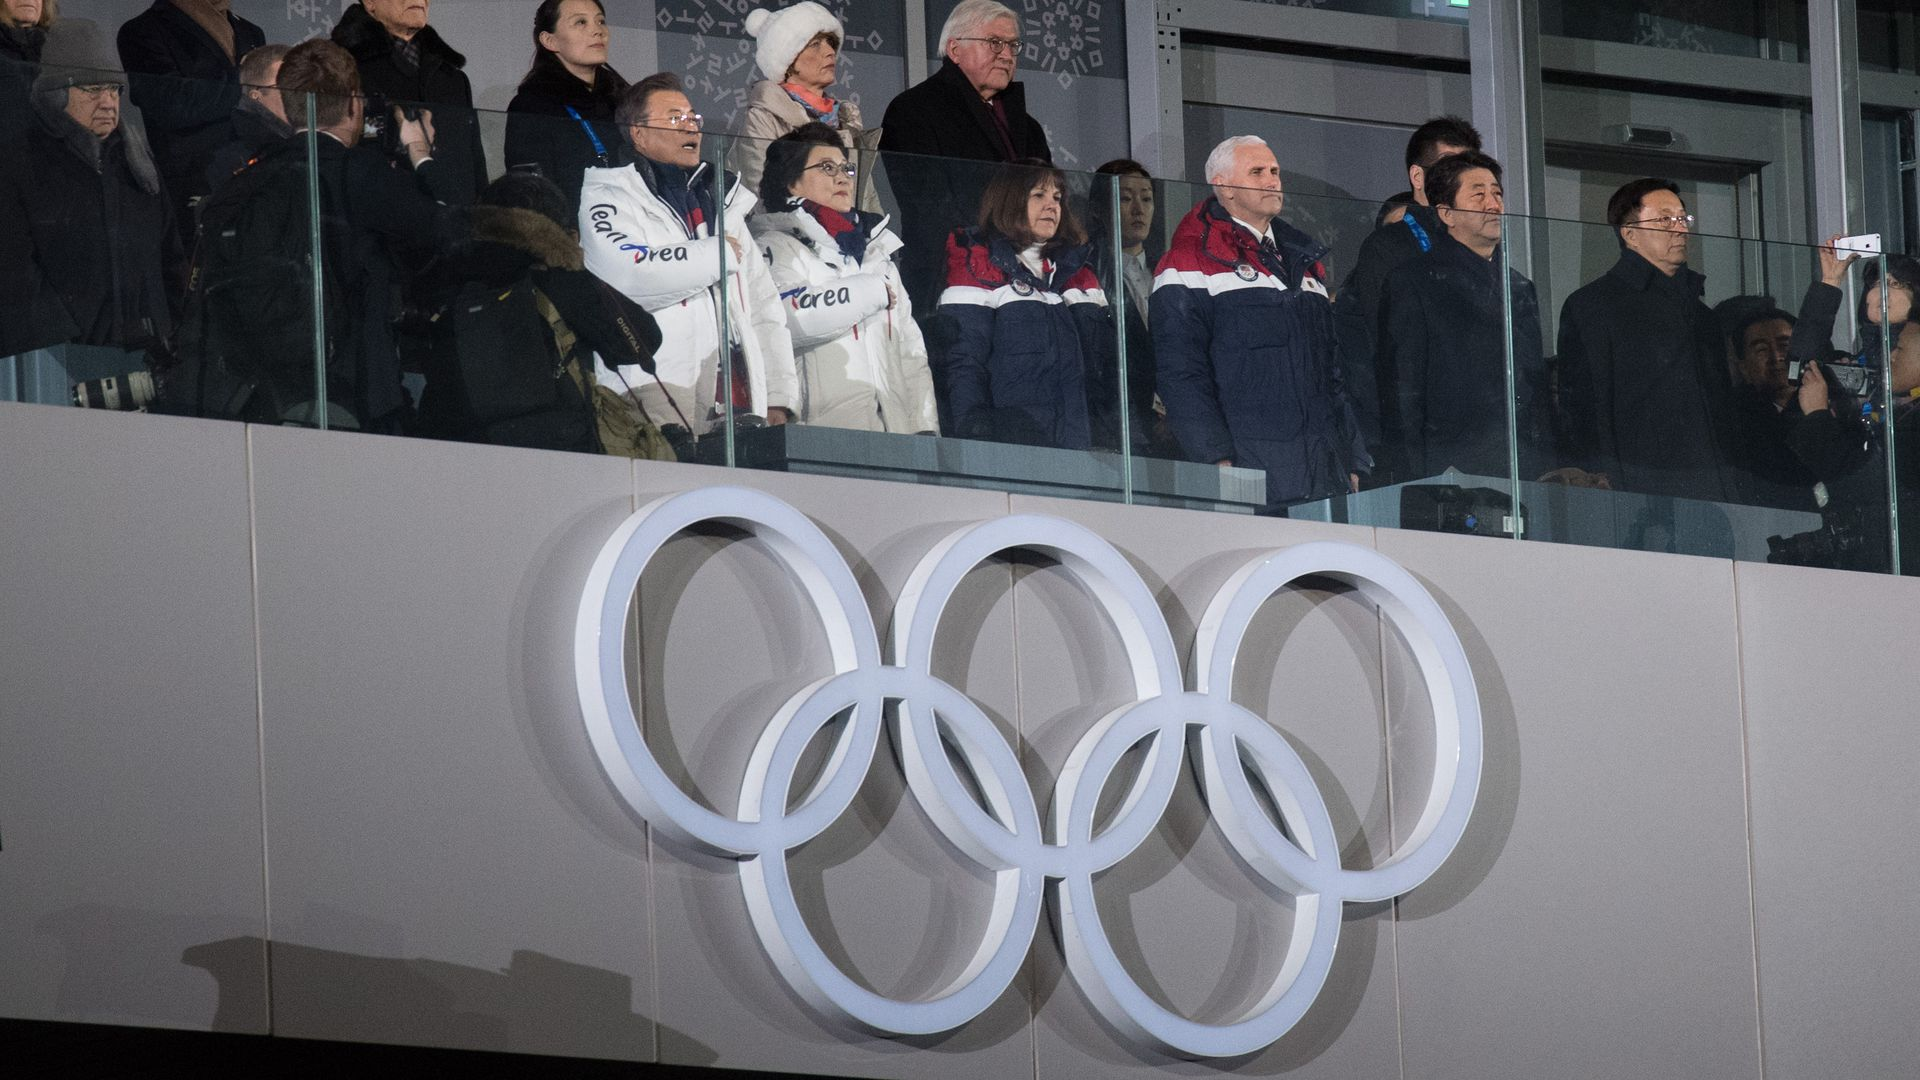 Day two of the Winter Olympics in Korea, here is a photo of VP Mike Pence sitting in box with other officials